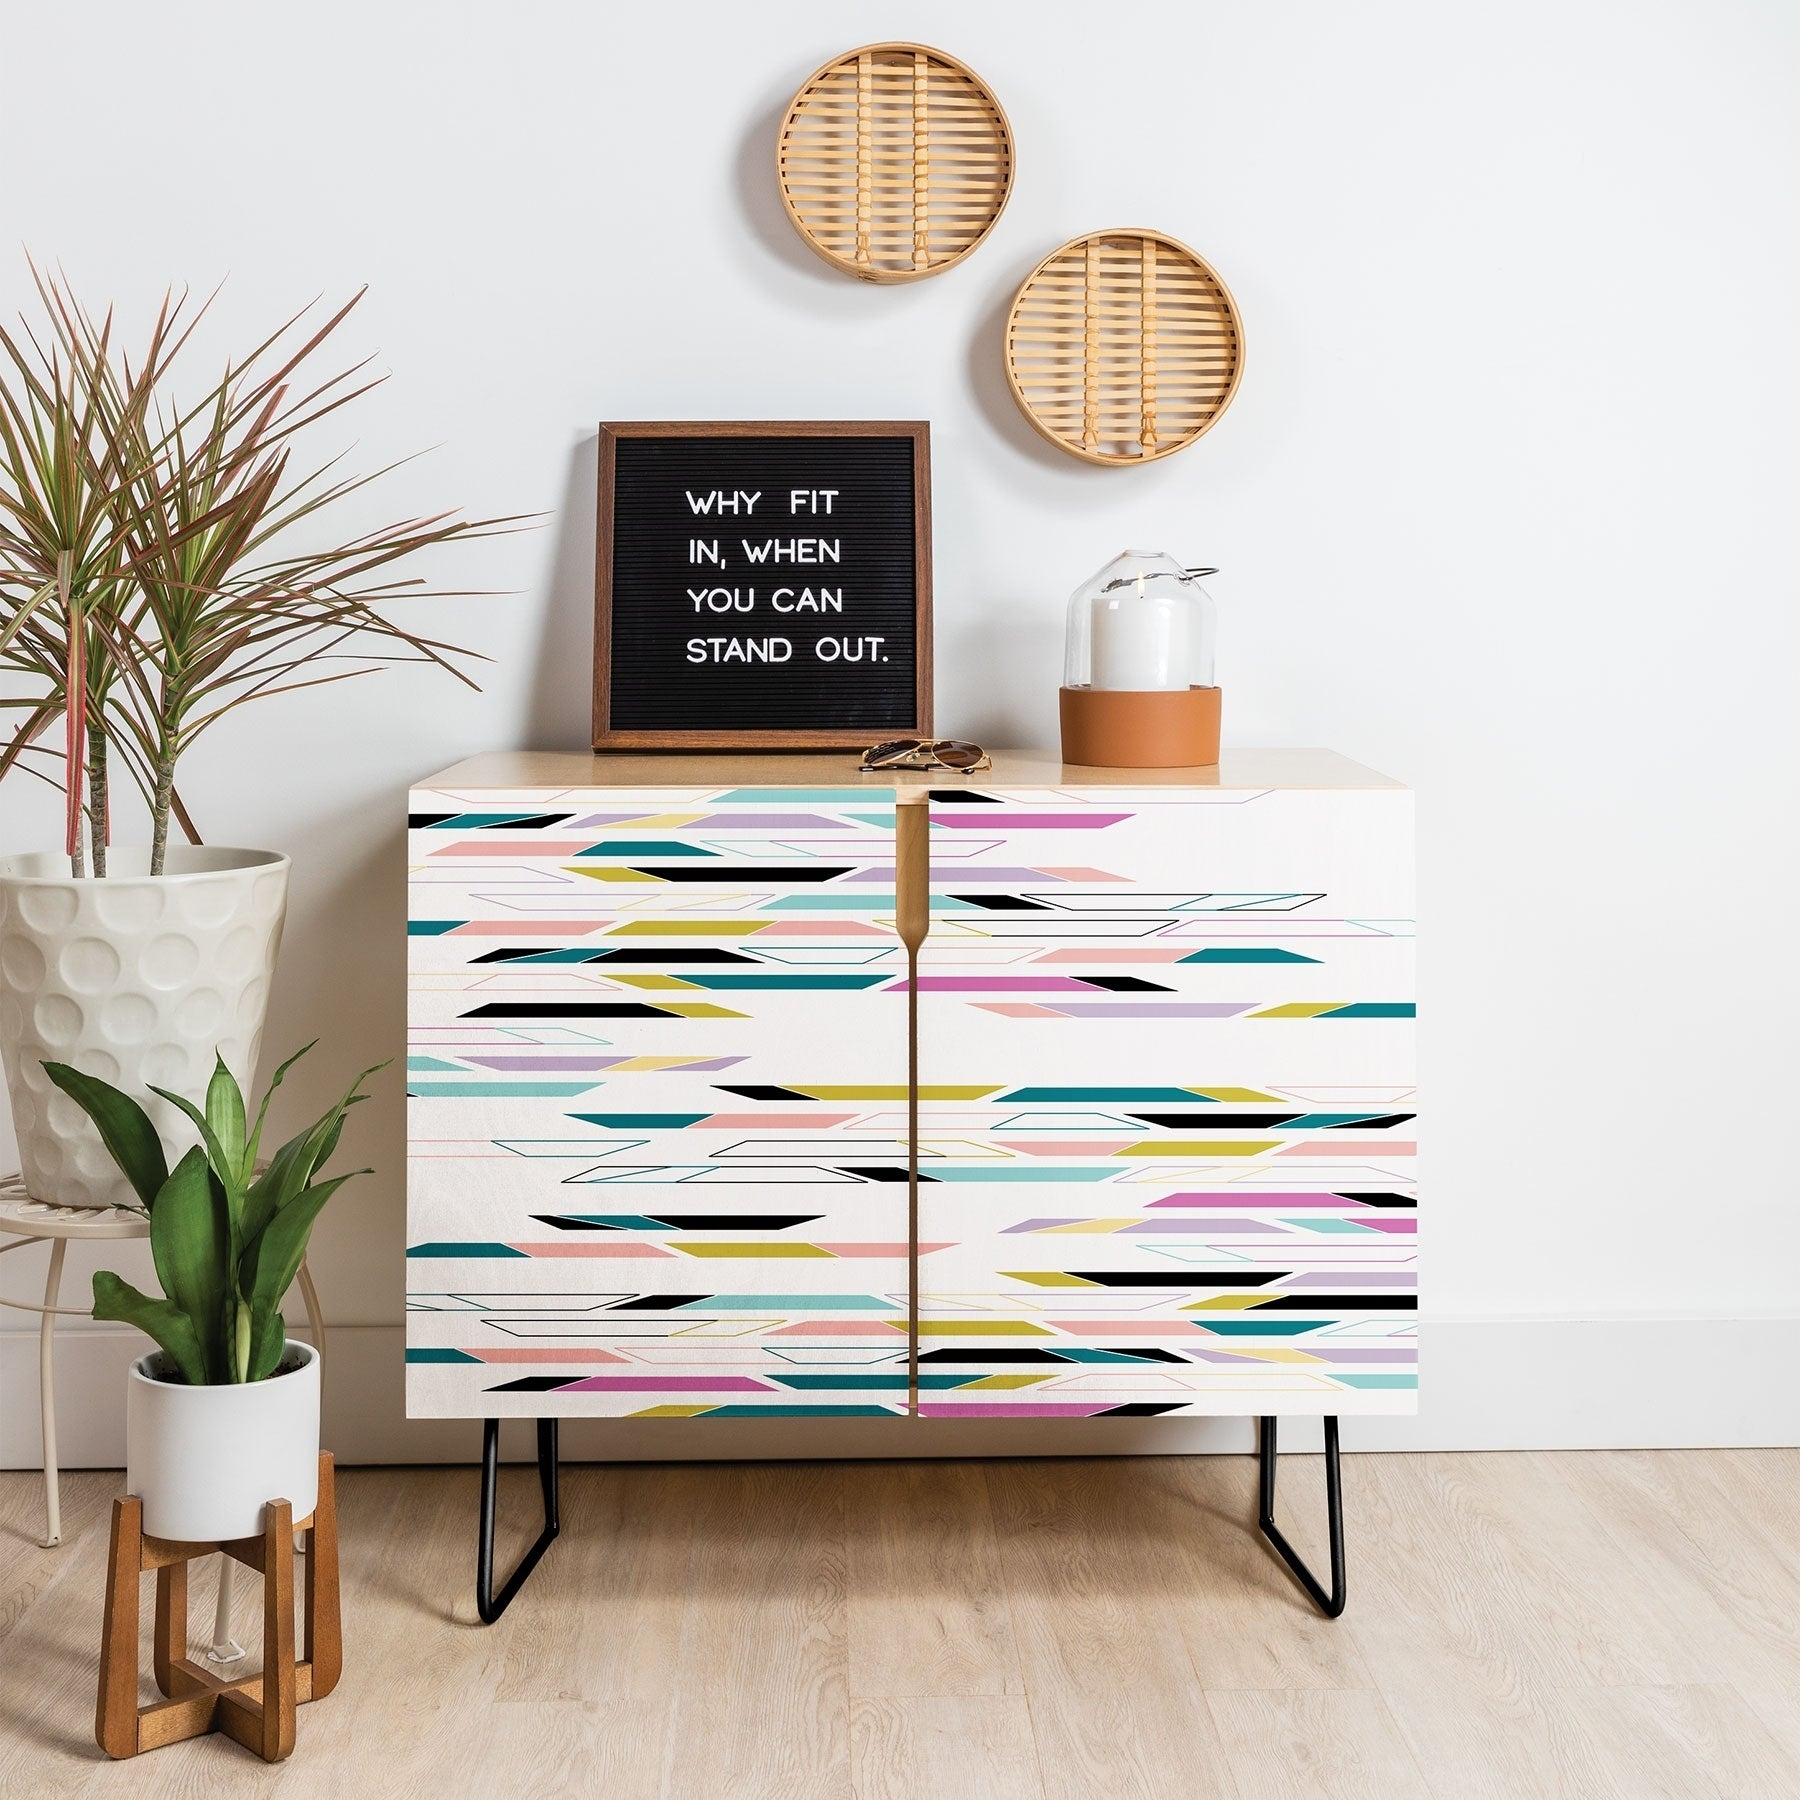 Deny Designs Multi Colored Geometric Shapes Credenza (Birch Or Walnut, 3  Leg Options) Intended For Multi Colored Geometric Shapes Credenzas (Photo 4 of 30)